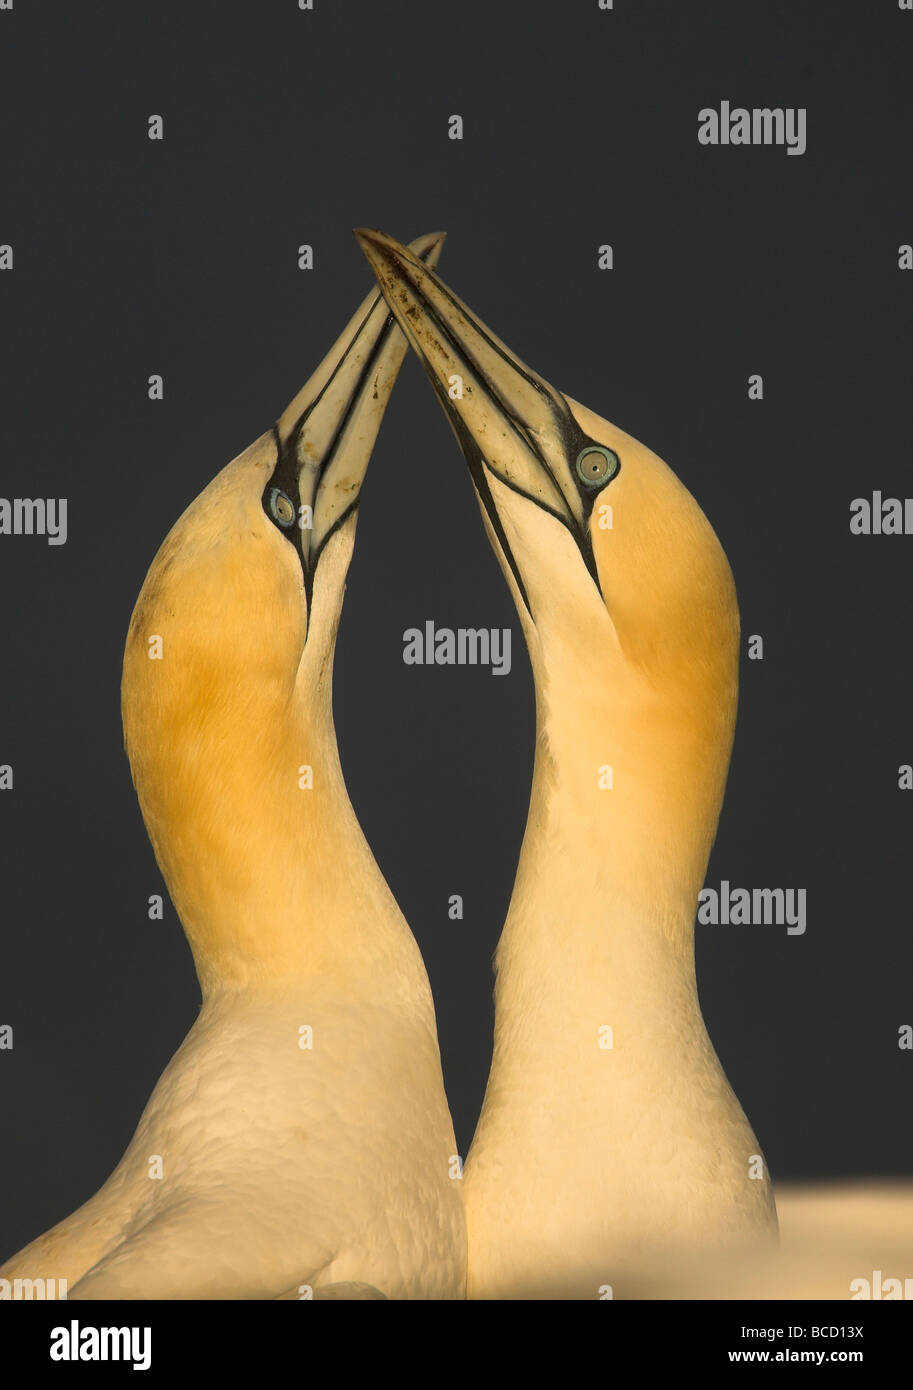 Gannet (Sula bassana) performing their courtship display ritual at their breeding colony - Stock Image